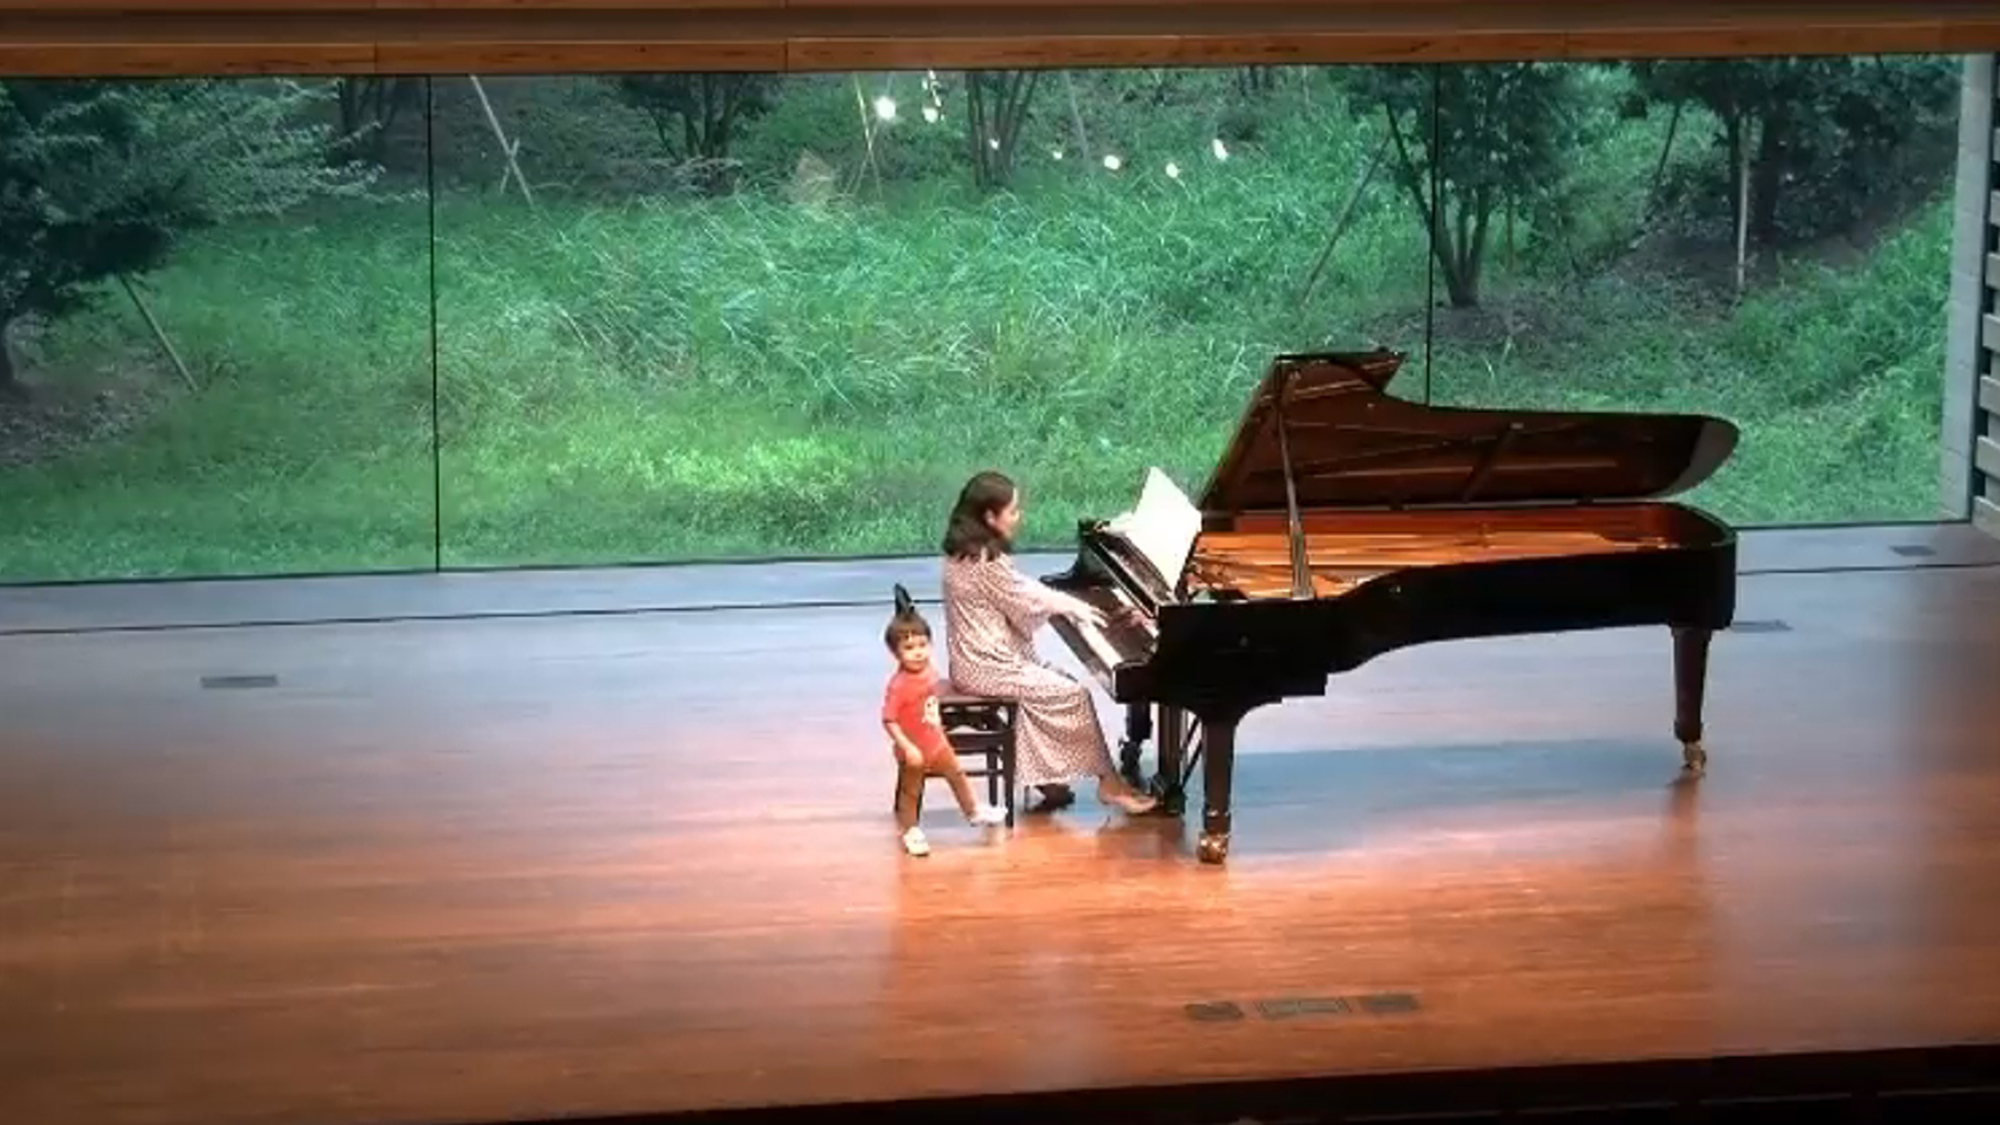 VIDEO: Rach-Mom-Inoff: Adorable 2-Year-Old Gatecrashes His Mother's Piano Recital